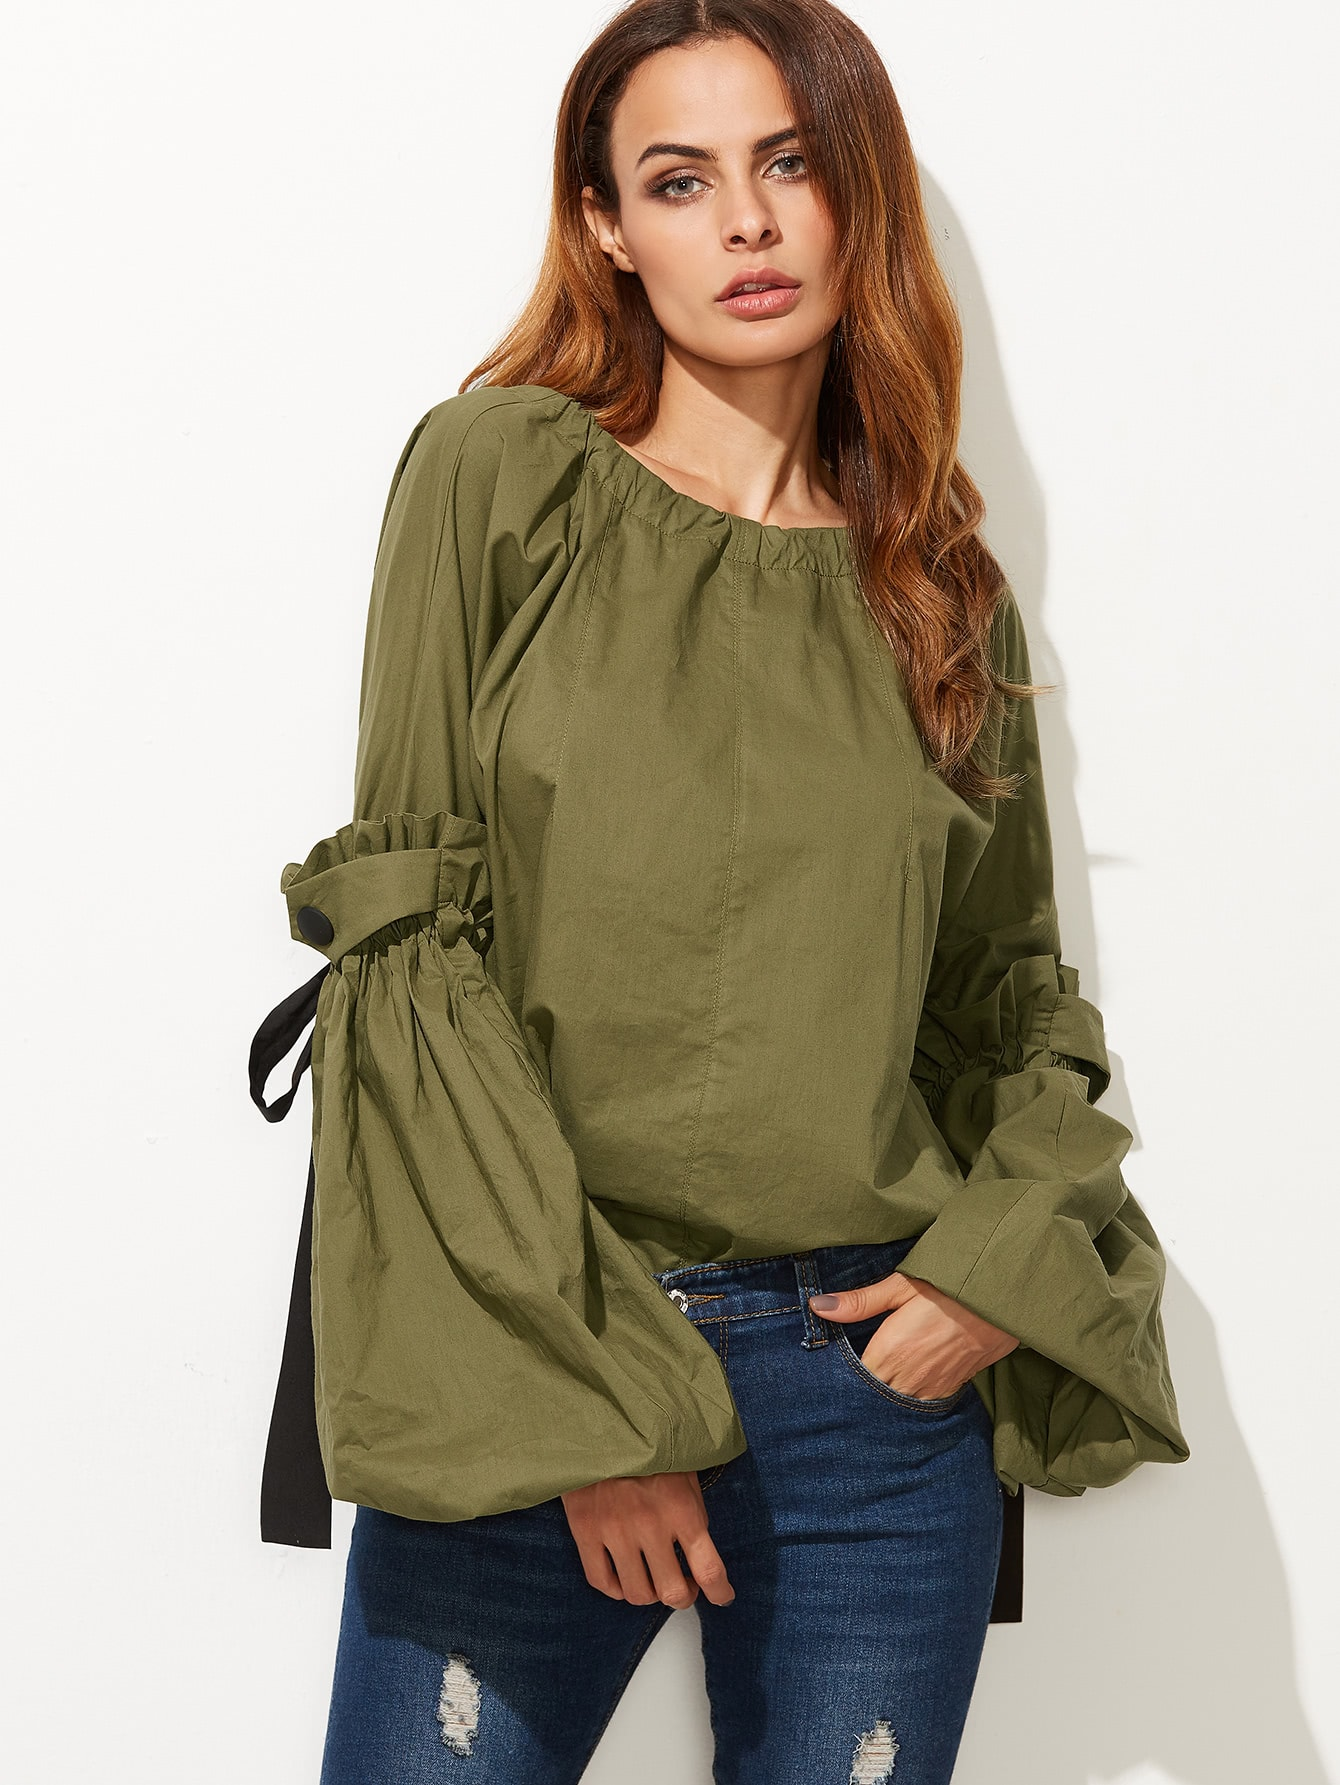 Olive Green Contrast Drawstring Detail Lantern Sleeve BlouseOlive Green Contrast Drawstring Detail Lantern Sleeve Blouse<br><br>color: Army Green<br>size: L,M,S,XS